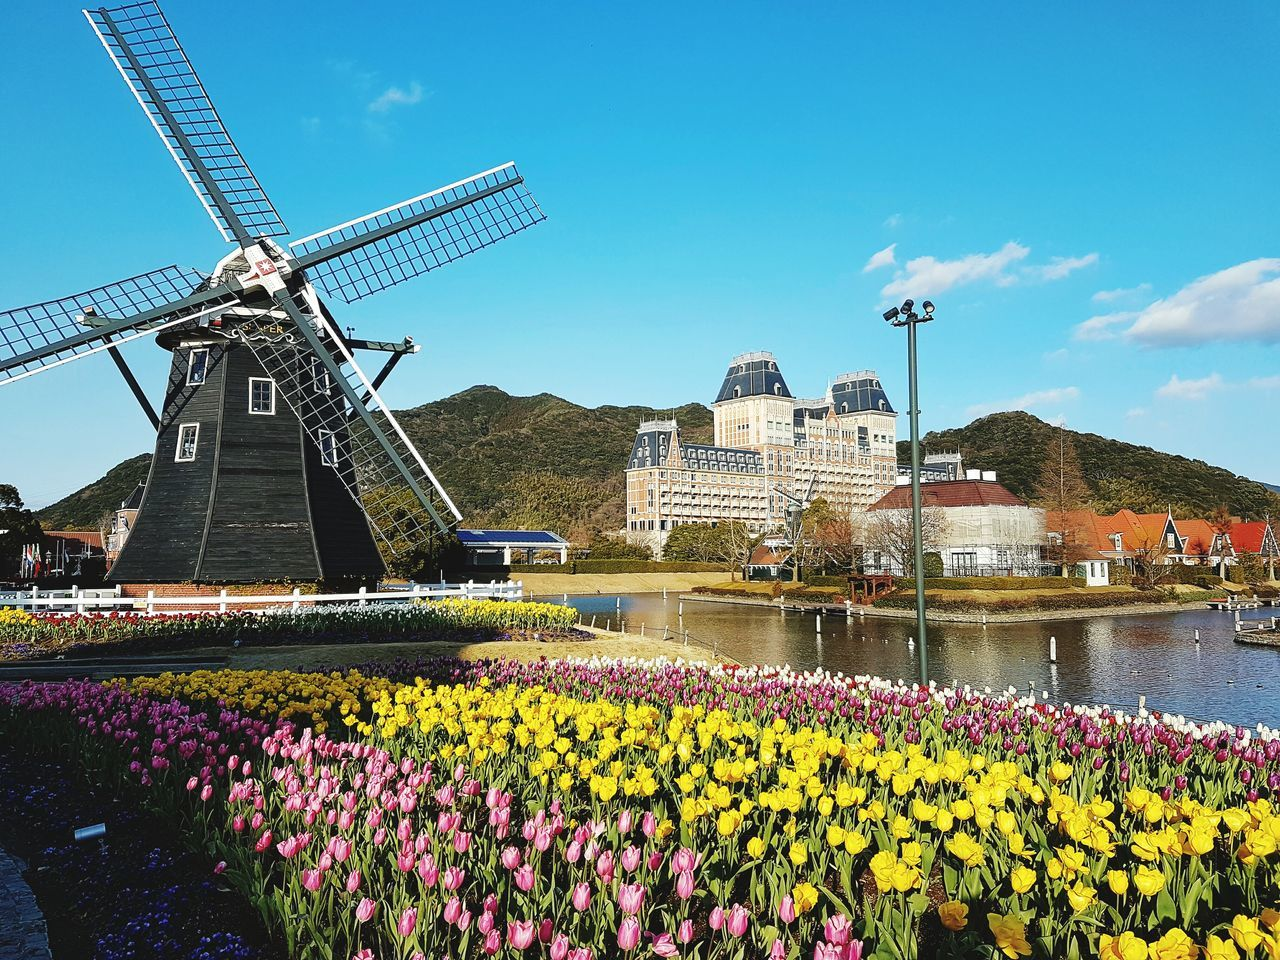 Beauty In Nature Outdoors Sky Windmill Flower Travel Nature Cloud - Sky Reflection Tree Nature Lake Leaf Water No People Day Growth Huis Ten Bosch ArchitectureBeauty In Nature Nagasaki Japan Fukuoka,Japan Dutch Landscape Amsterdam